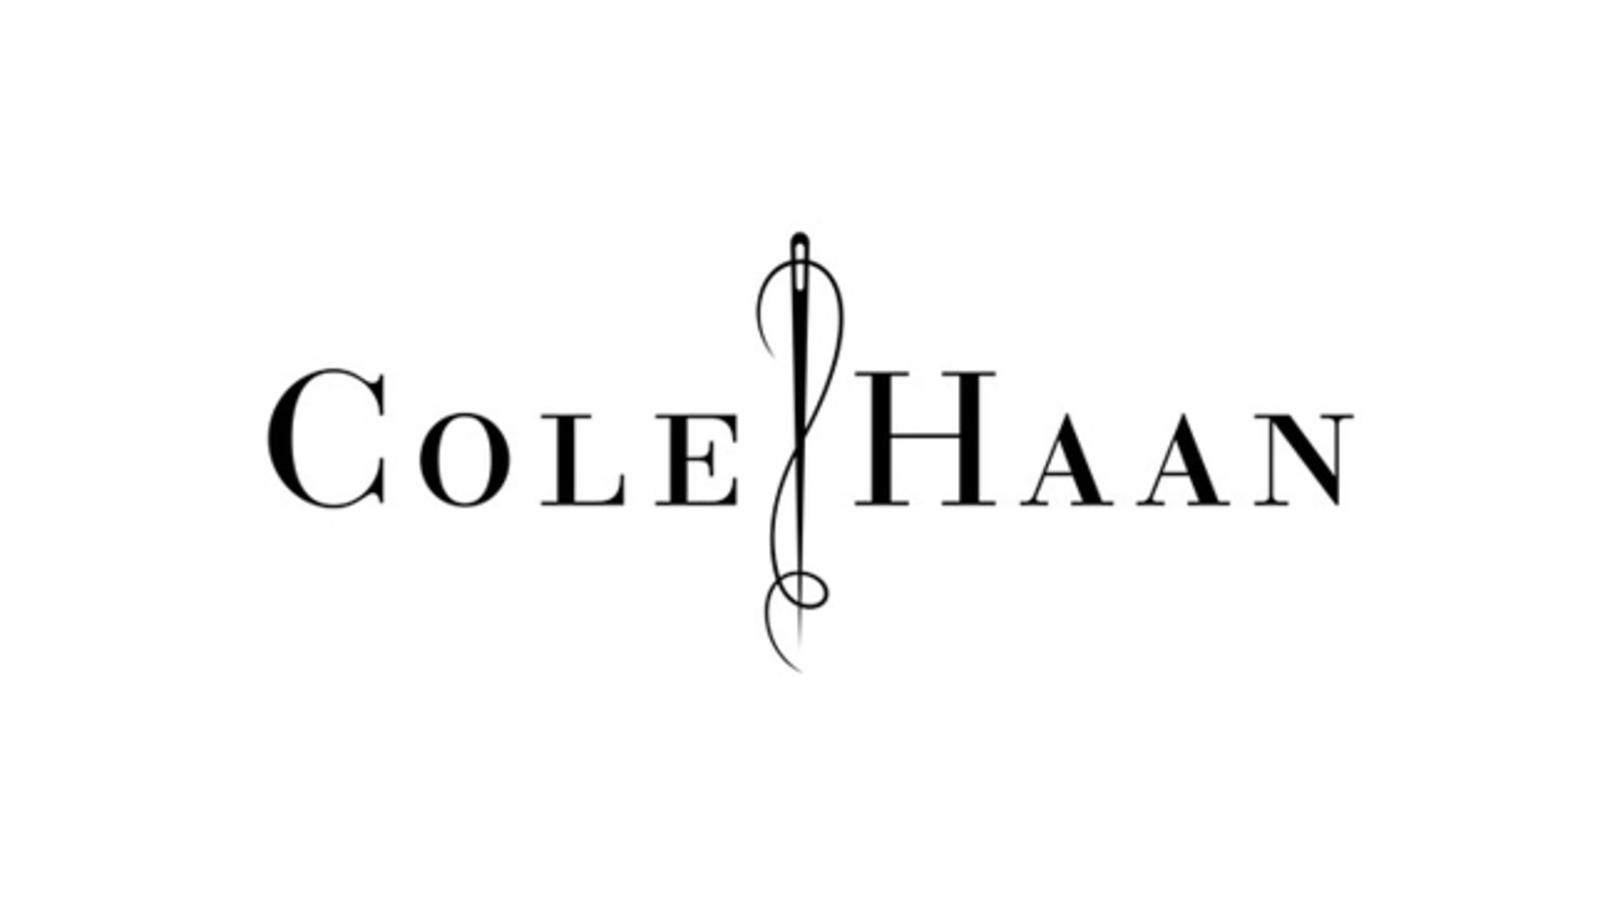 Nike News - NIKE, Inc. Announces Sale of Cole Haan to Apax Partners